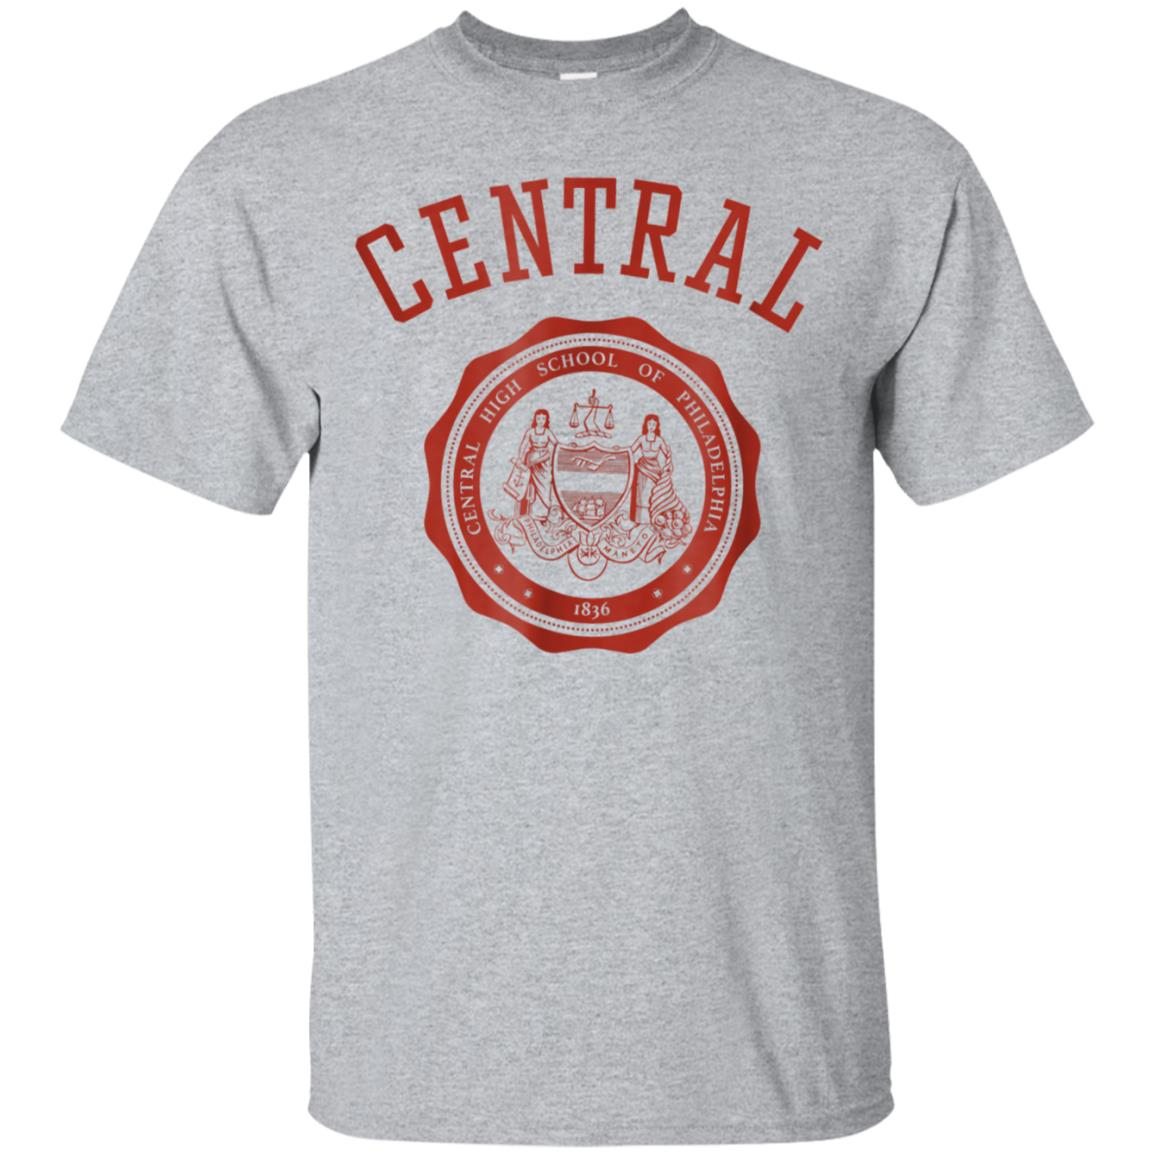 Classic Central High School T-Shirt 99promocode